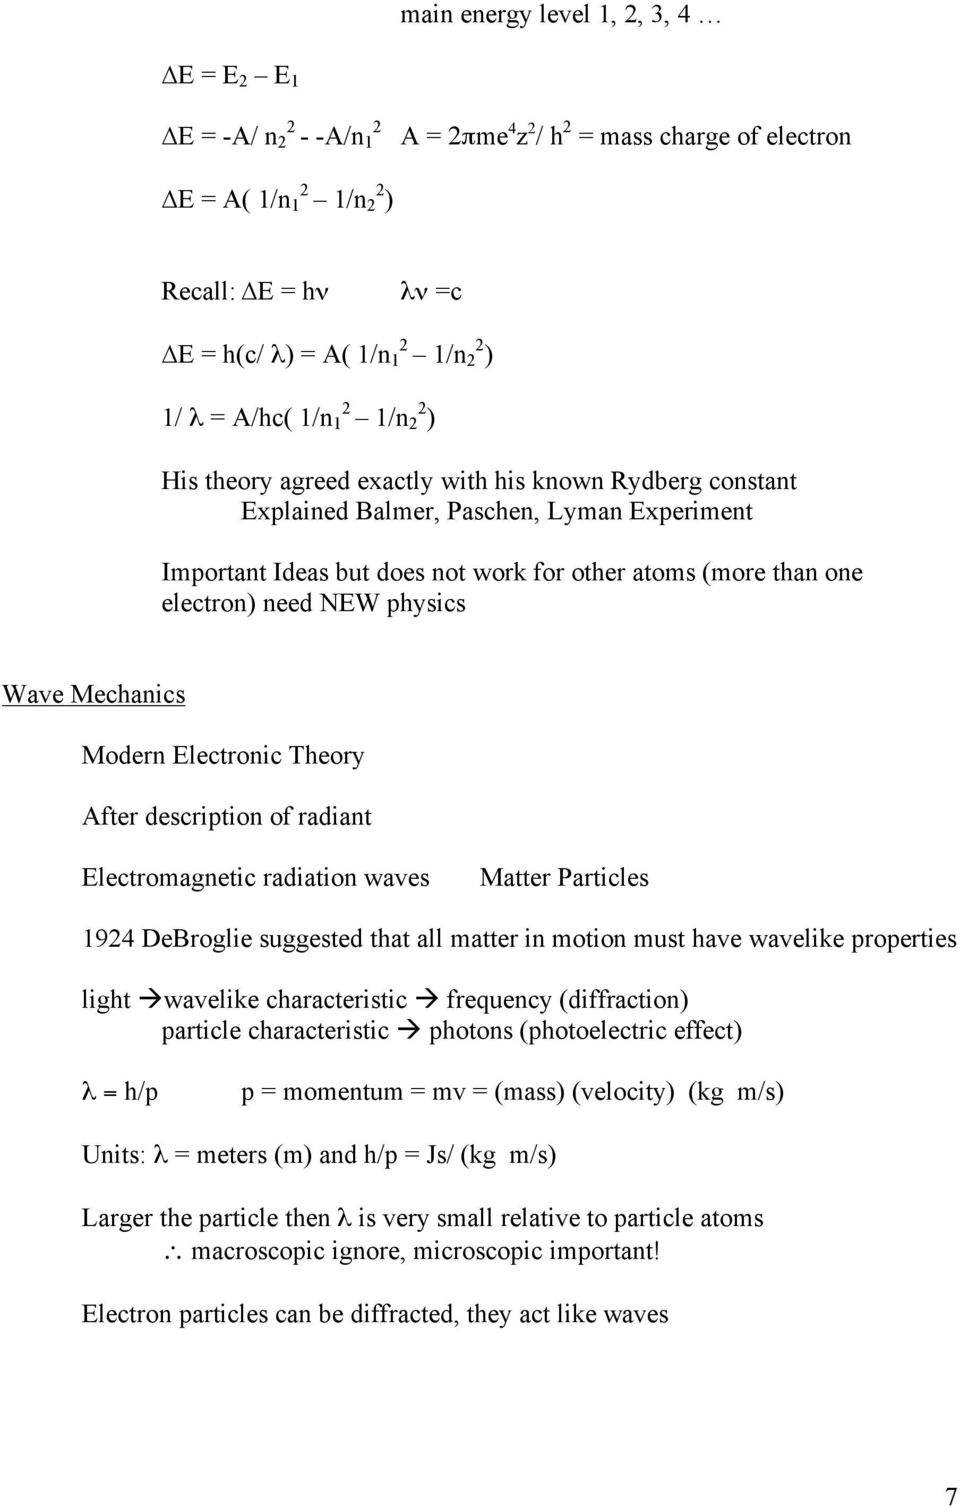 worksheet Electron Configuration Worksheet And Lots More Answers – Electron Configuration Worksheet and Lots More Answers